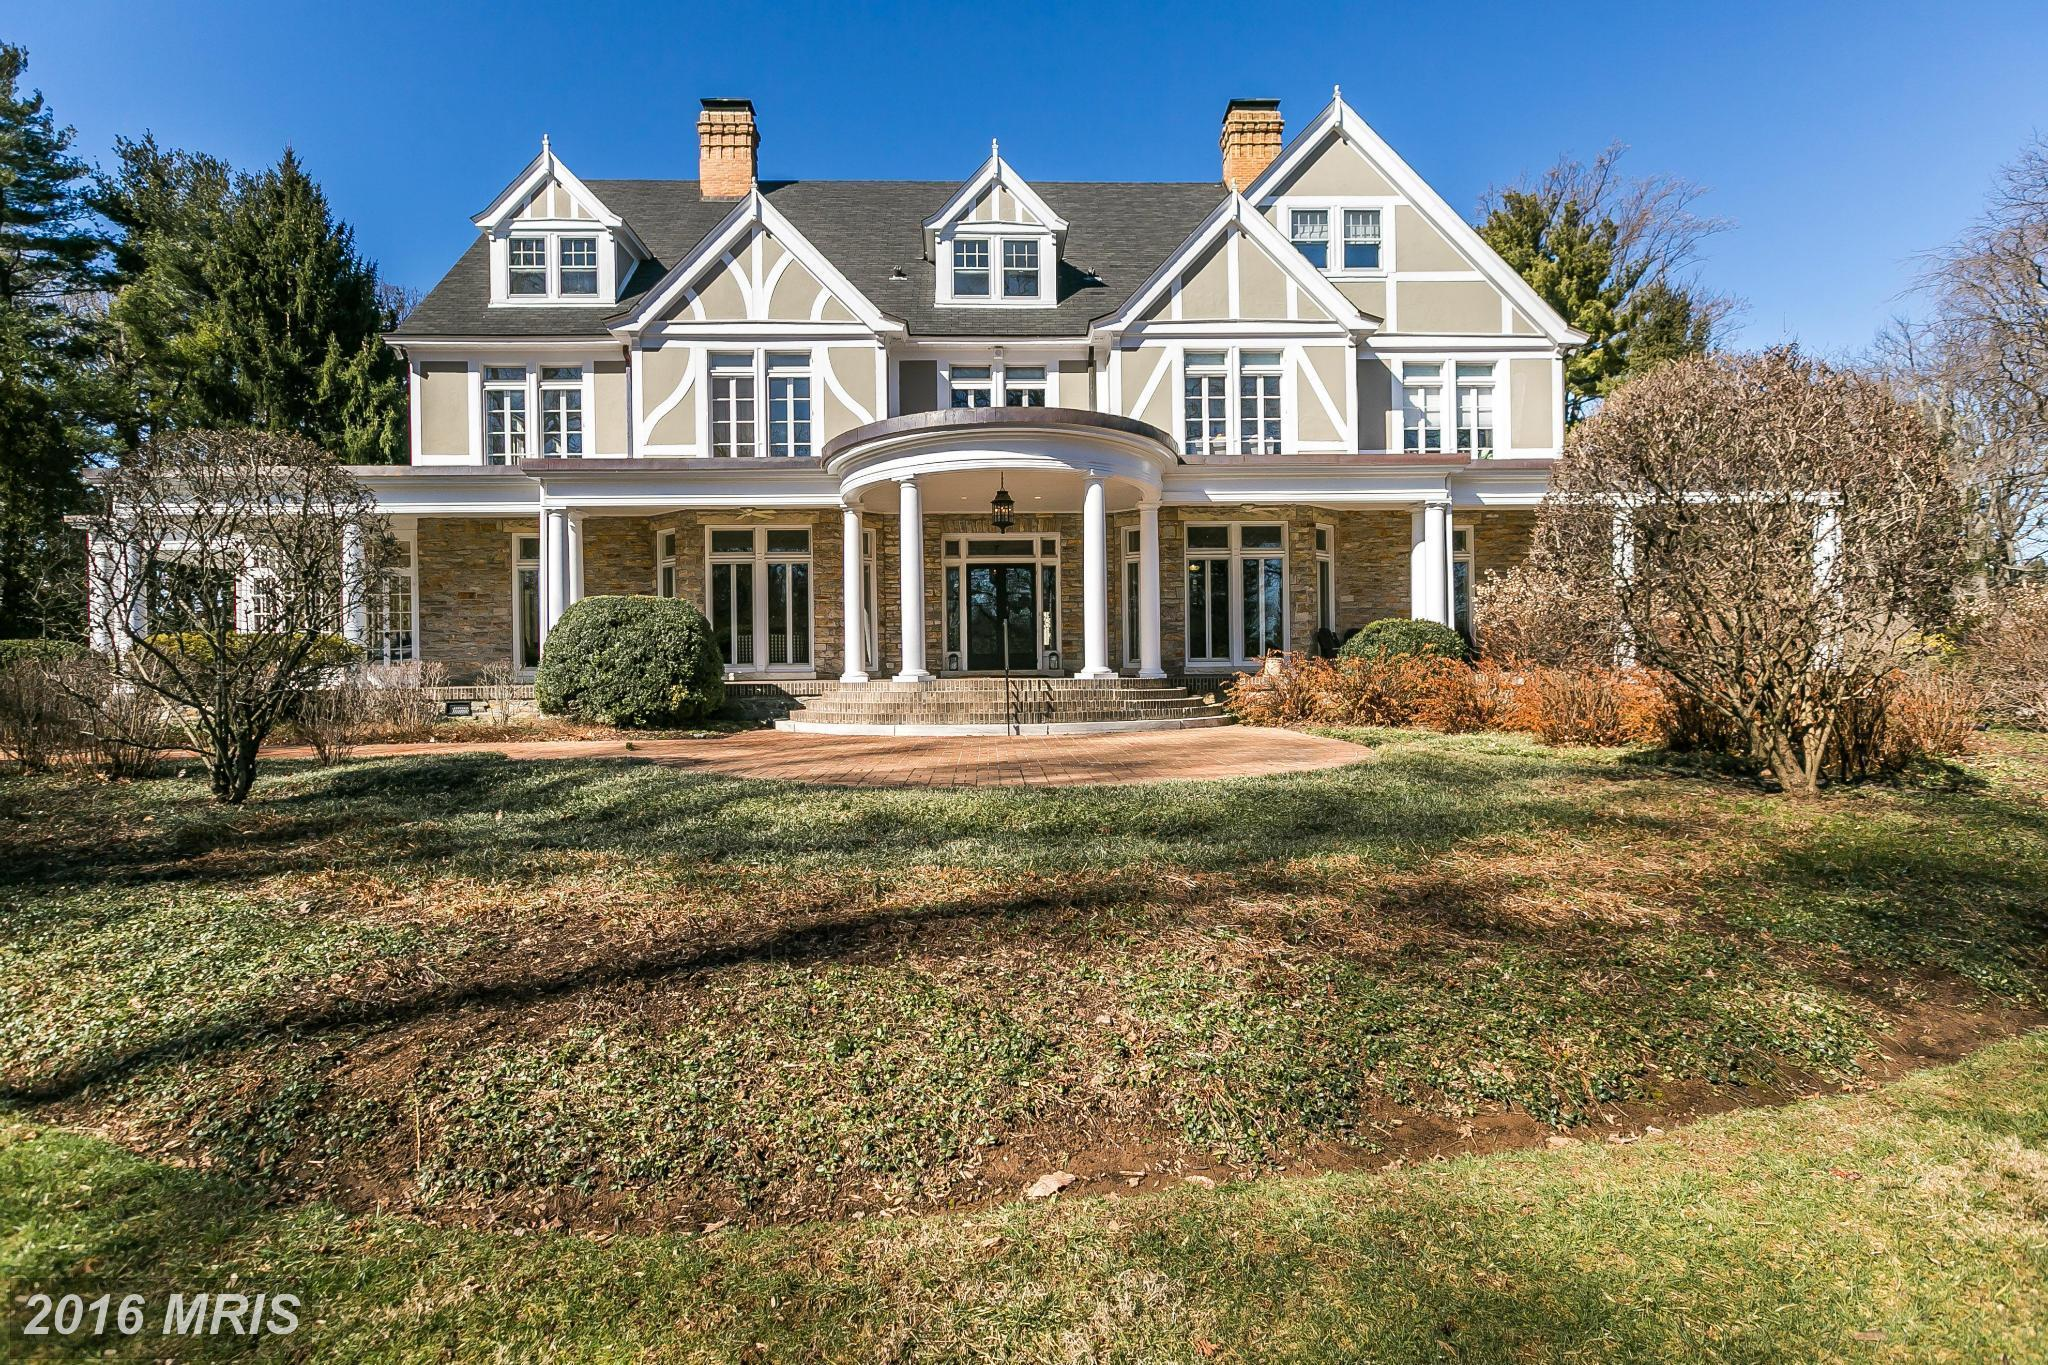 Top 10 most expensive homes sold in the Baltimore area in 2016  Baltimore Sun